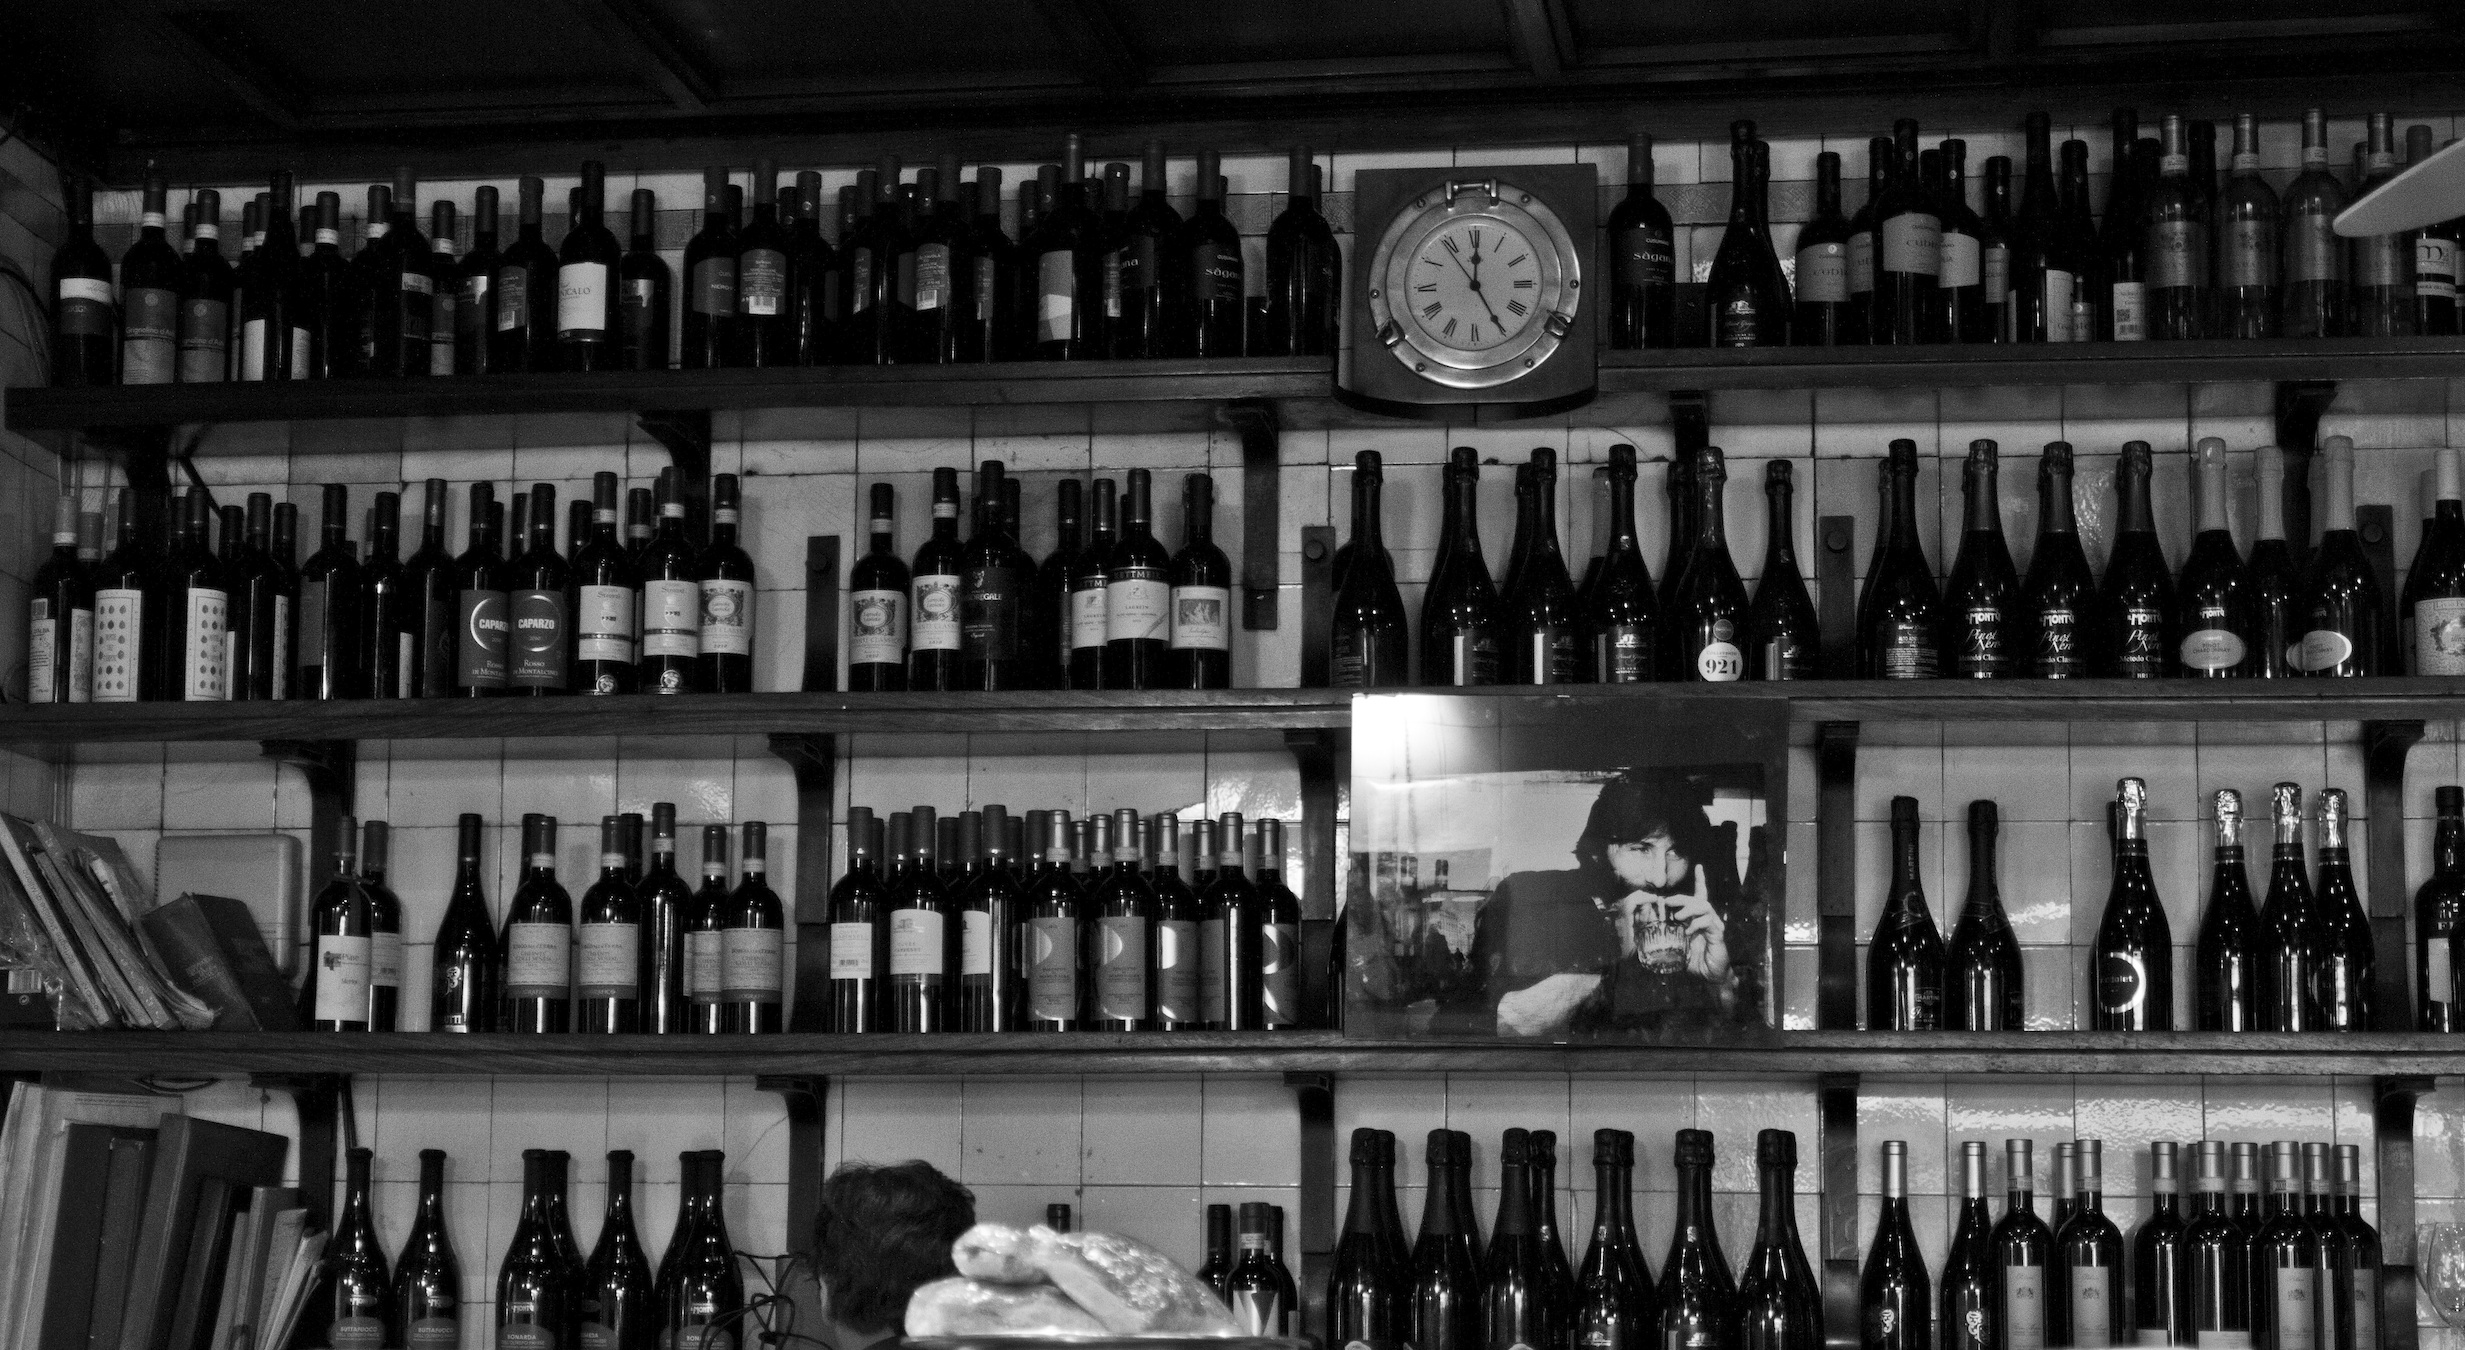 L'interno del Bar jamaica oggi